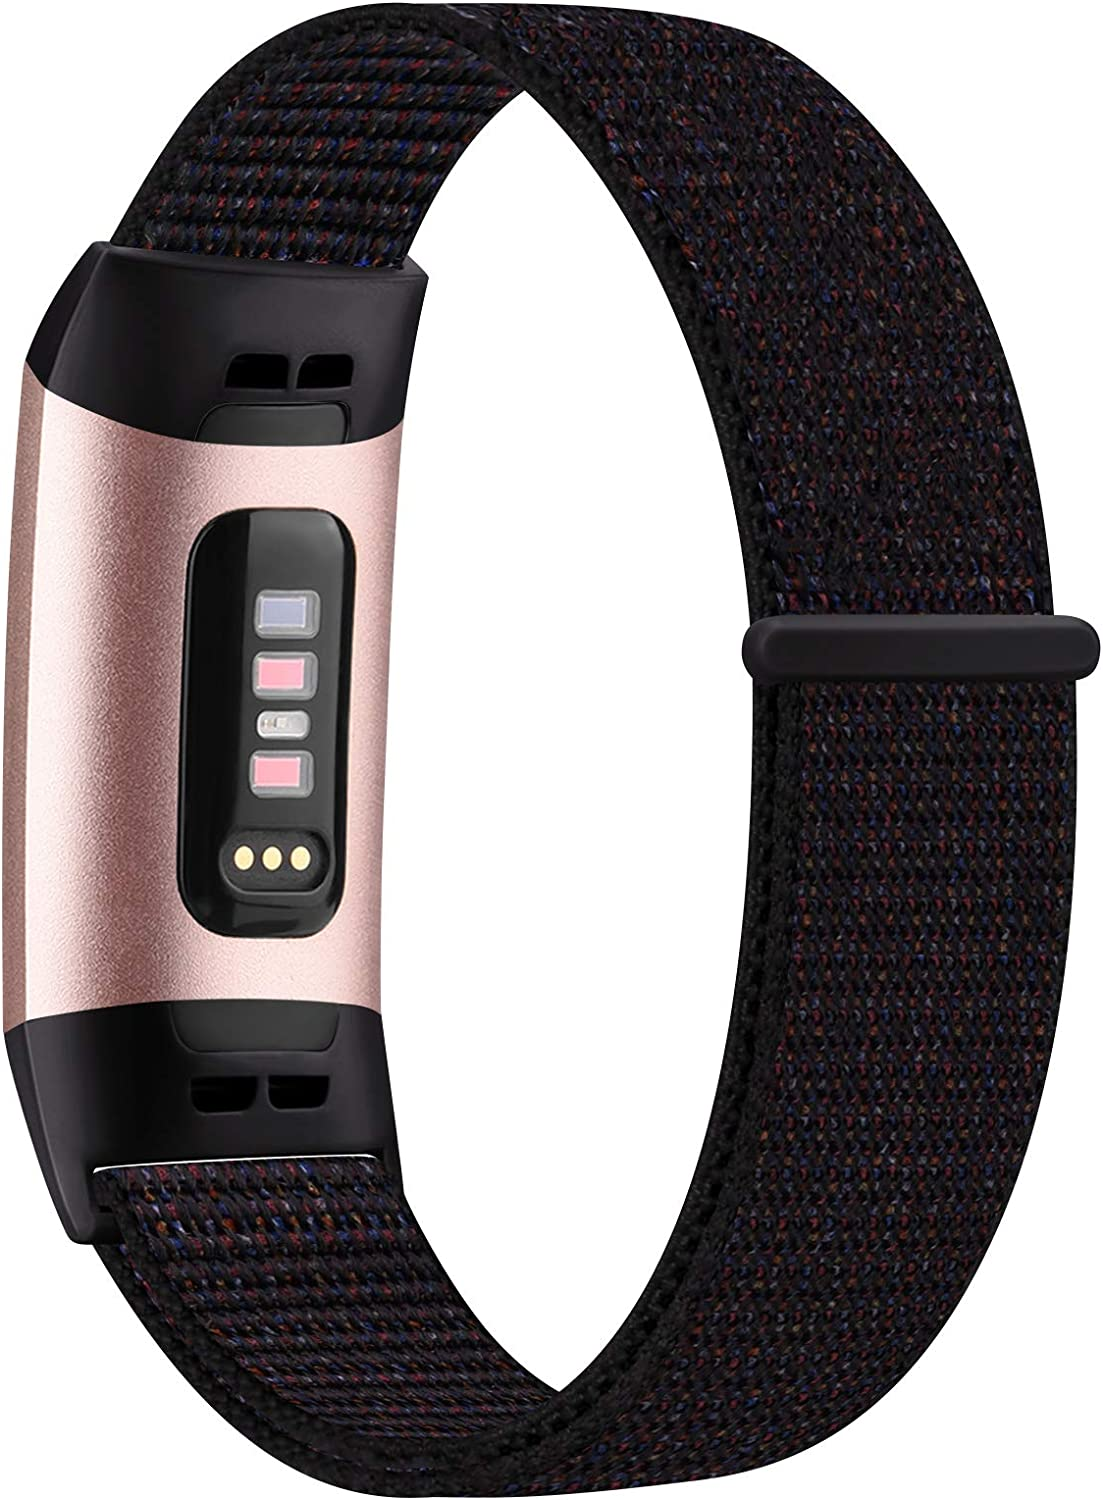 Brand New Fitbit Charge 3 Sport Band Black Small SHIPS FAST Authentic